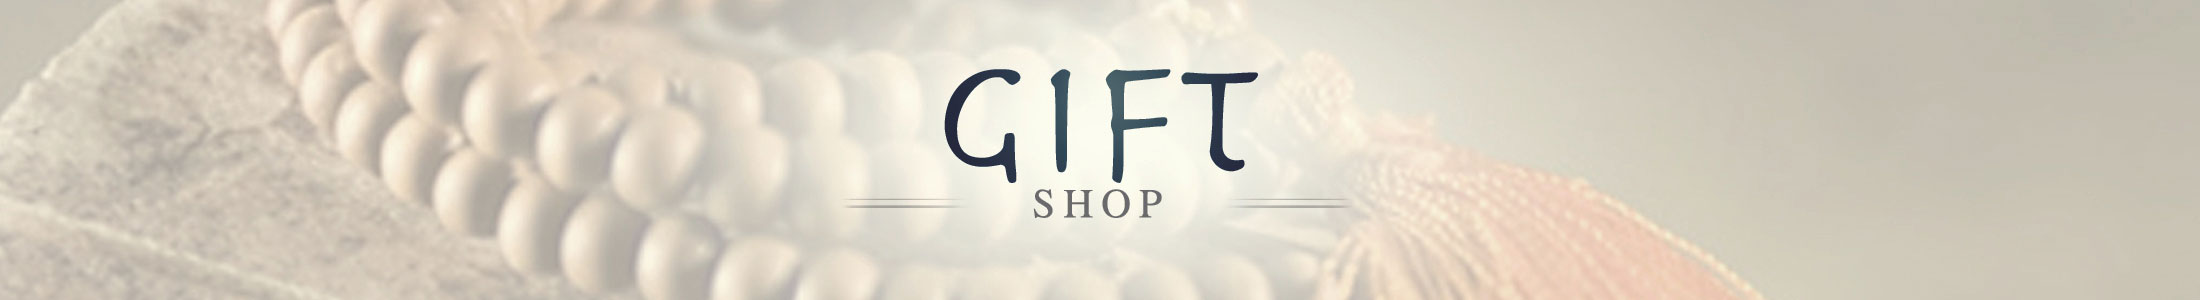 Spiritual Retreat Gift Shop